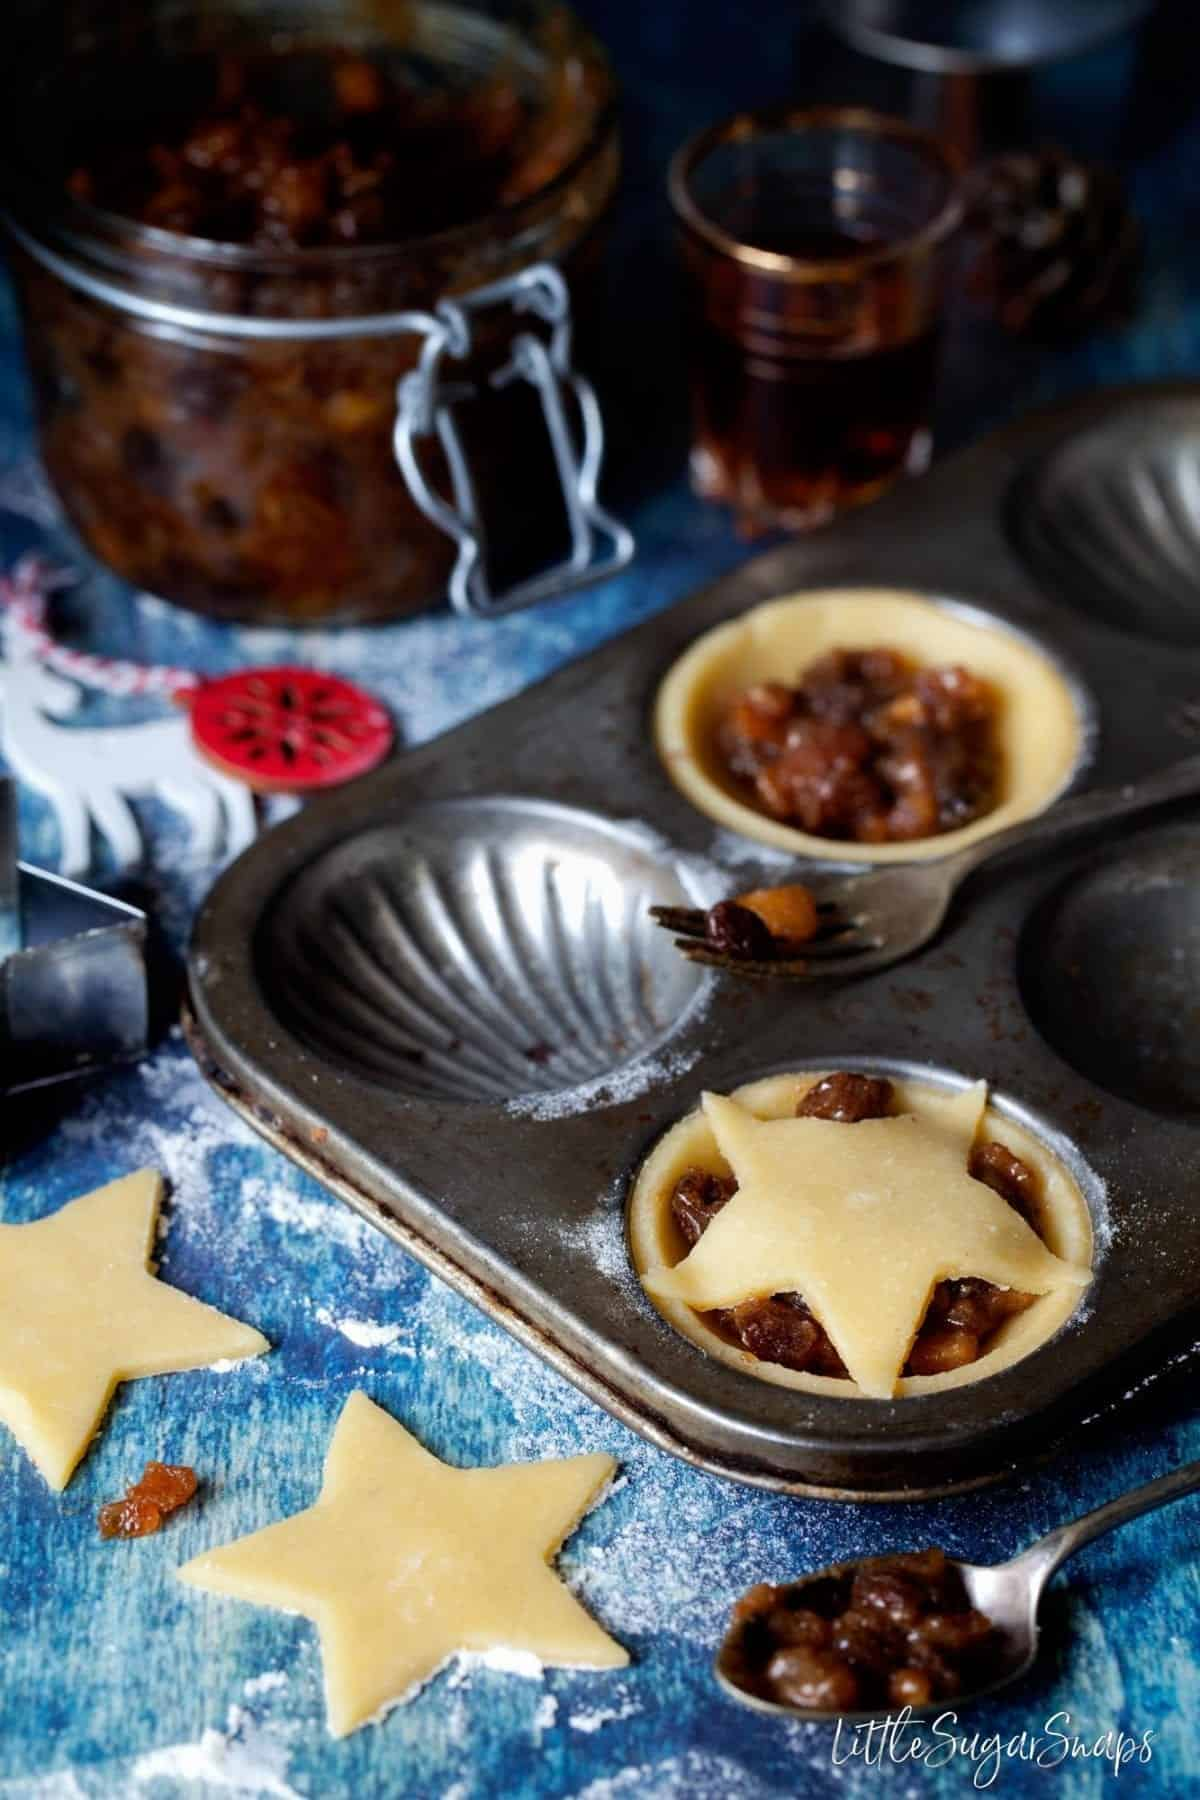 Gluten Free Mince Pies being made and placed in a vintage baking tin ready to cook